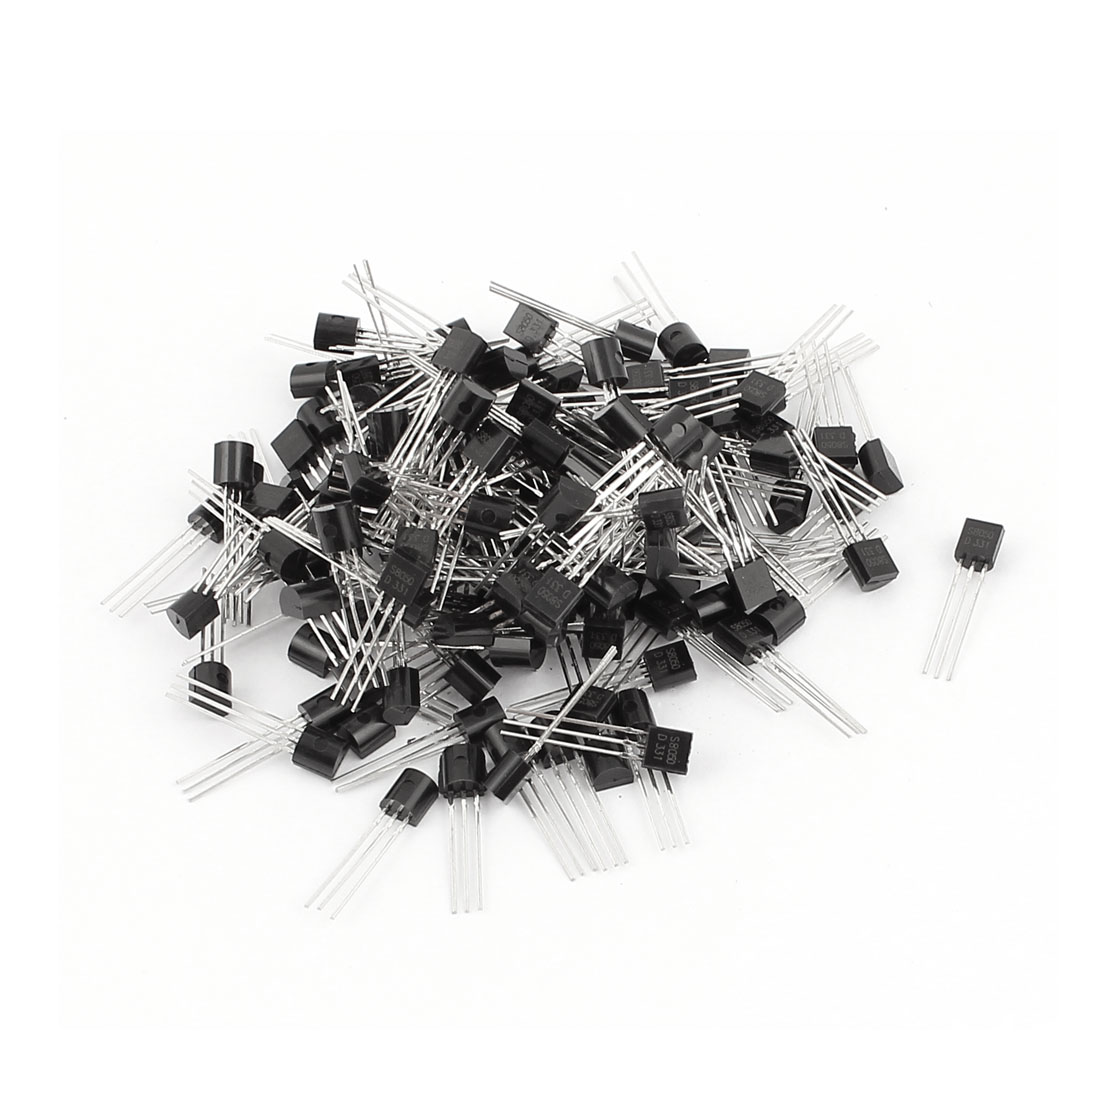 150 Pcs S8050 TO-92 NPN Bipolar Low Power Junction Transistors 40V 0.5A